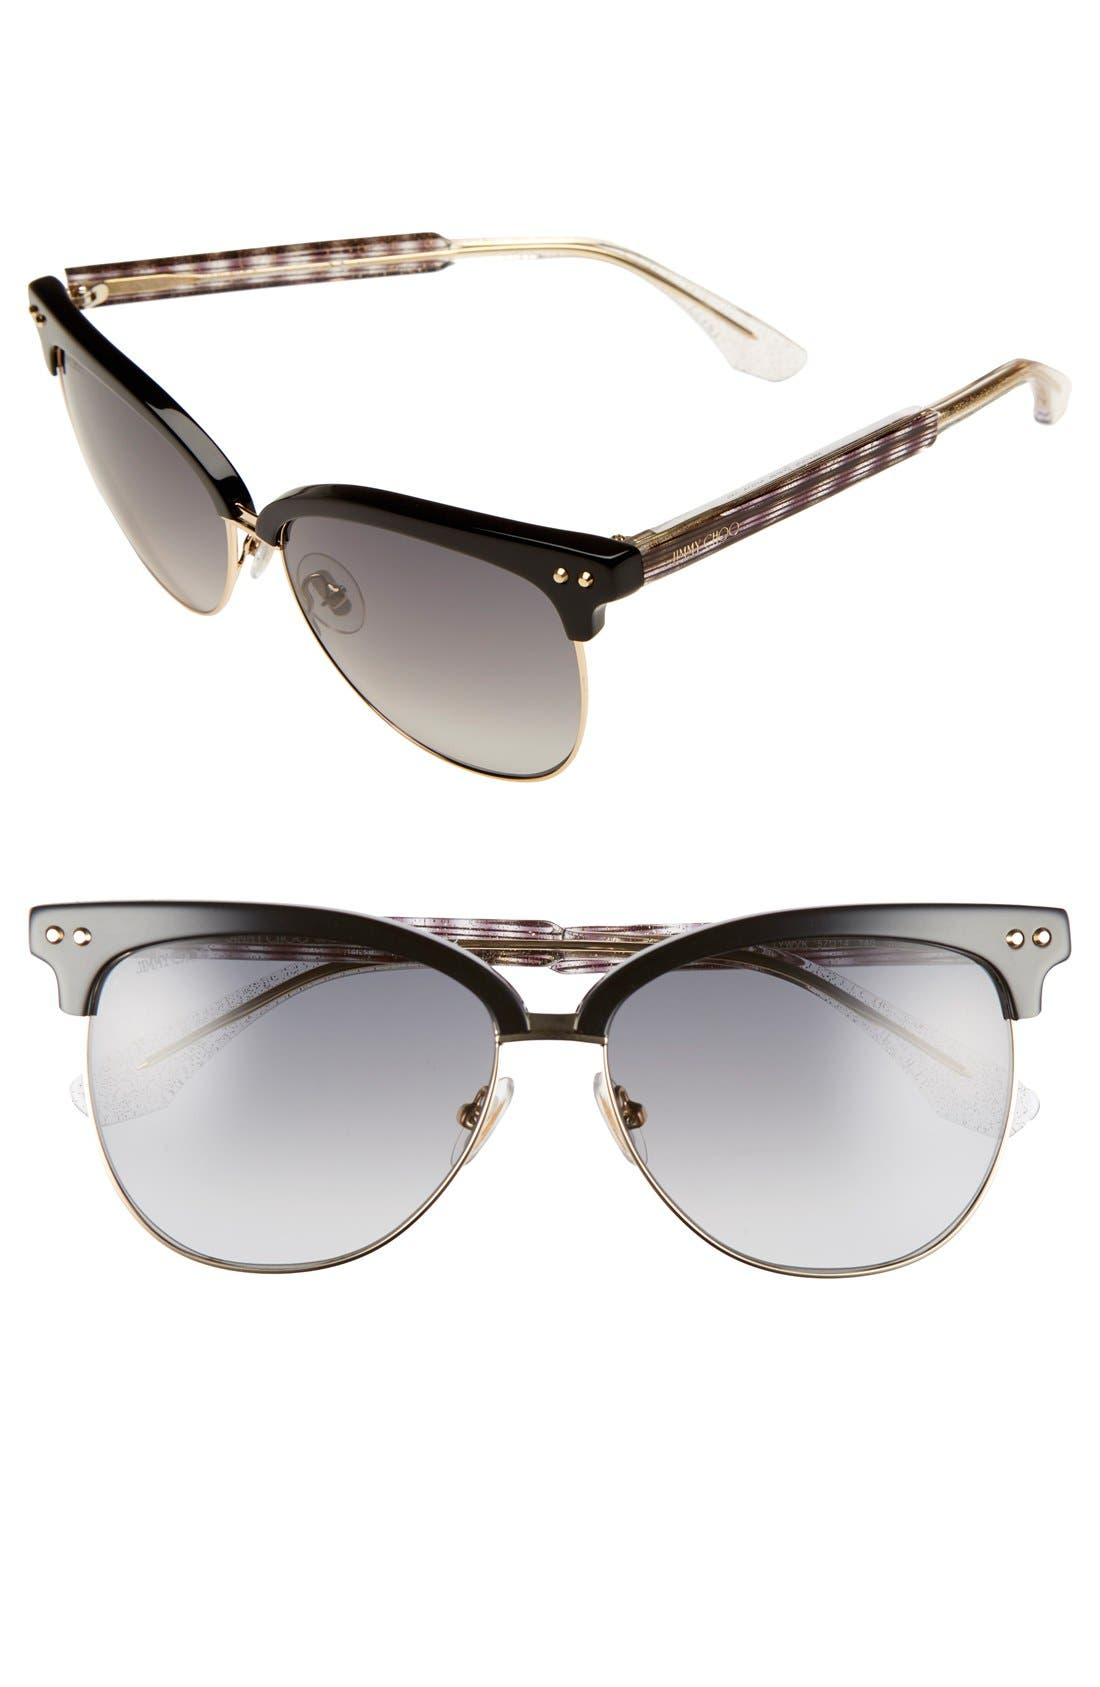 Alternate Image 1 Selected - Jimmy Choo 'Aryaya' 57mm Retro Sunglasses